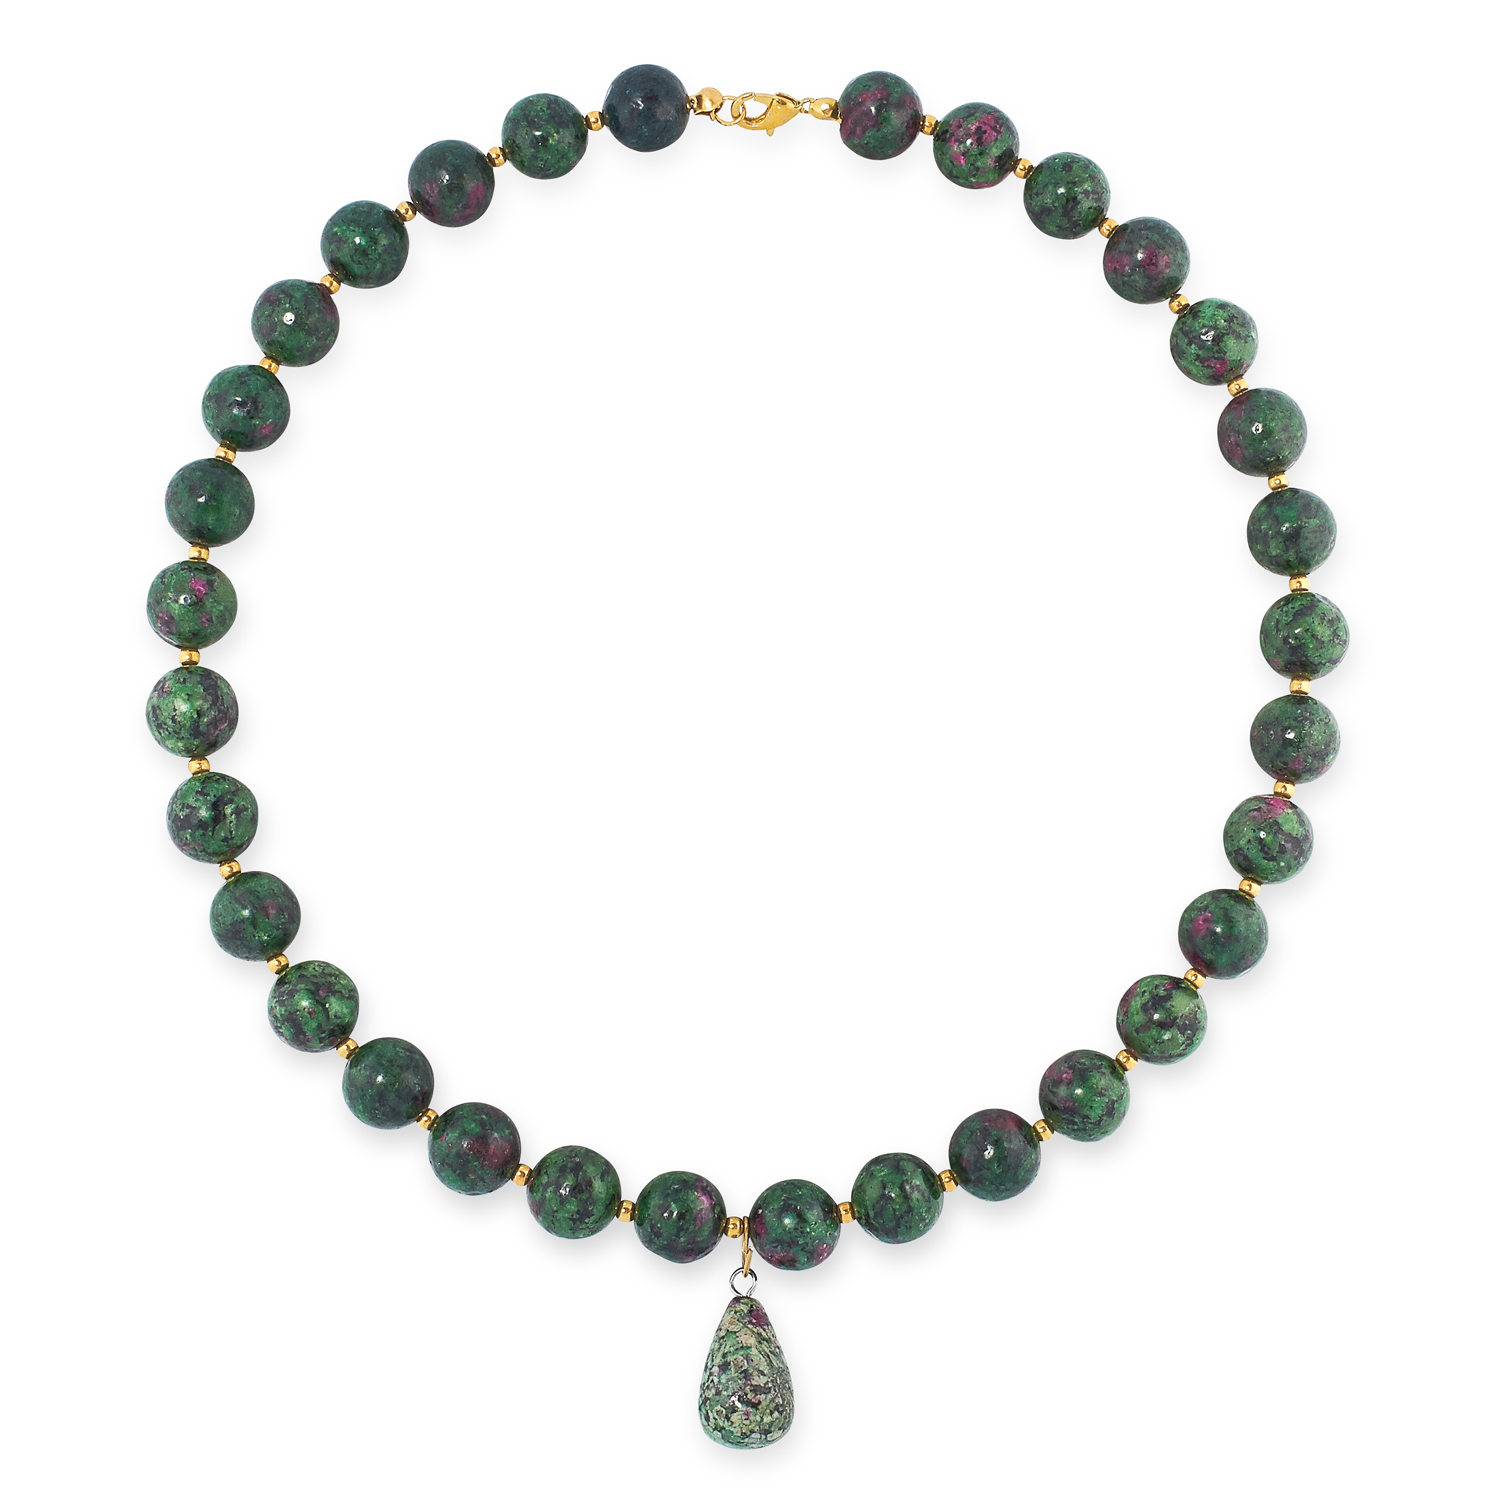 A MIXED LOT OF GEMSTONE BEAD NECKLACES, EARRINGS AND BRACELETS including jade, emerald, lapis - Image 8 of 13